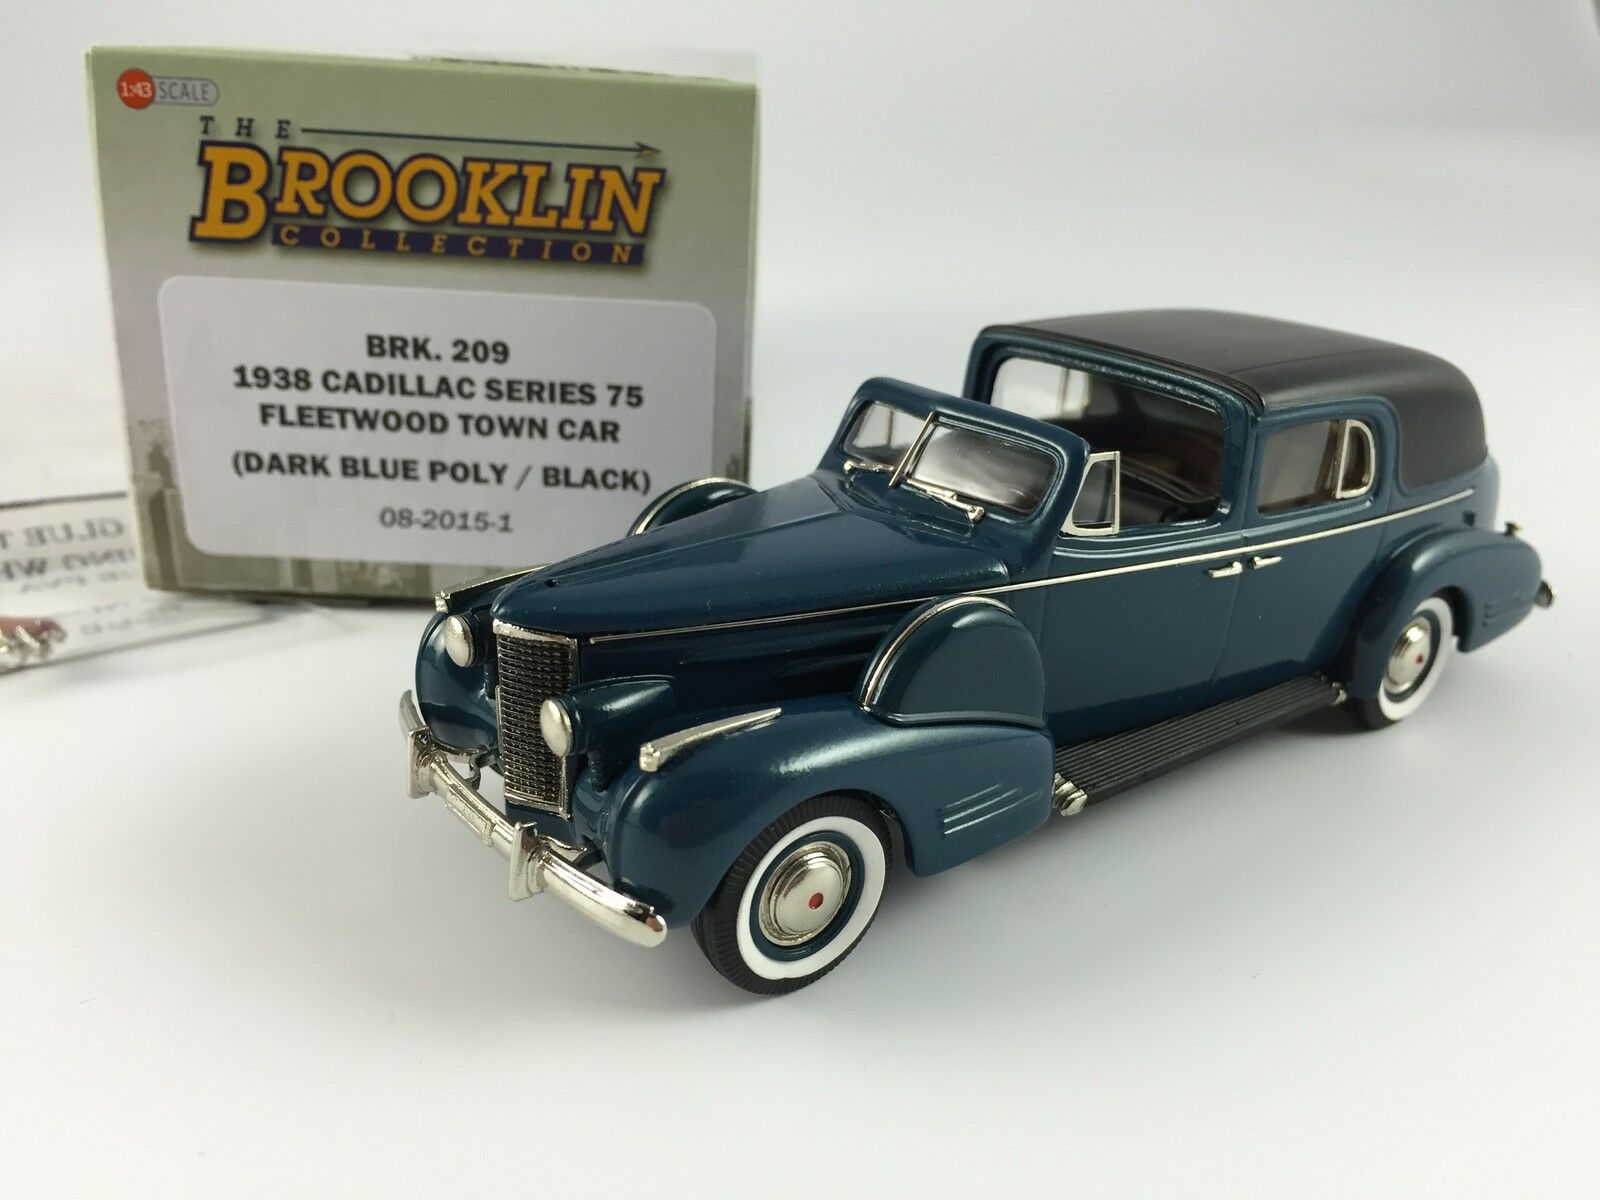 1/43 FLEETWOOD BROOKLIN 209 CADILLAC SERIE 75 FLEETWOOD 1/43 TOWN CAR 1938 DARK BLUE POLY BLACK f2765f